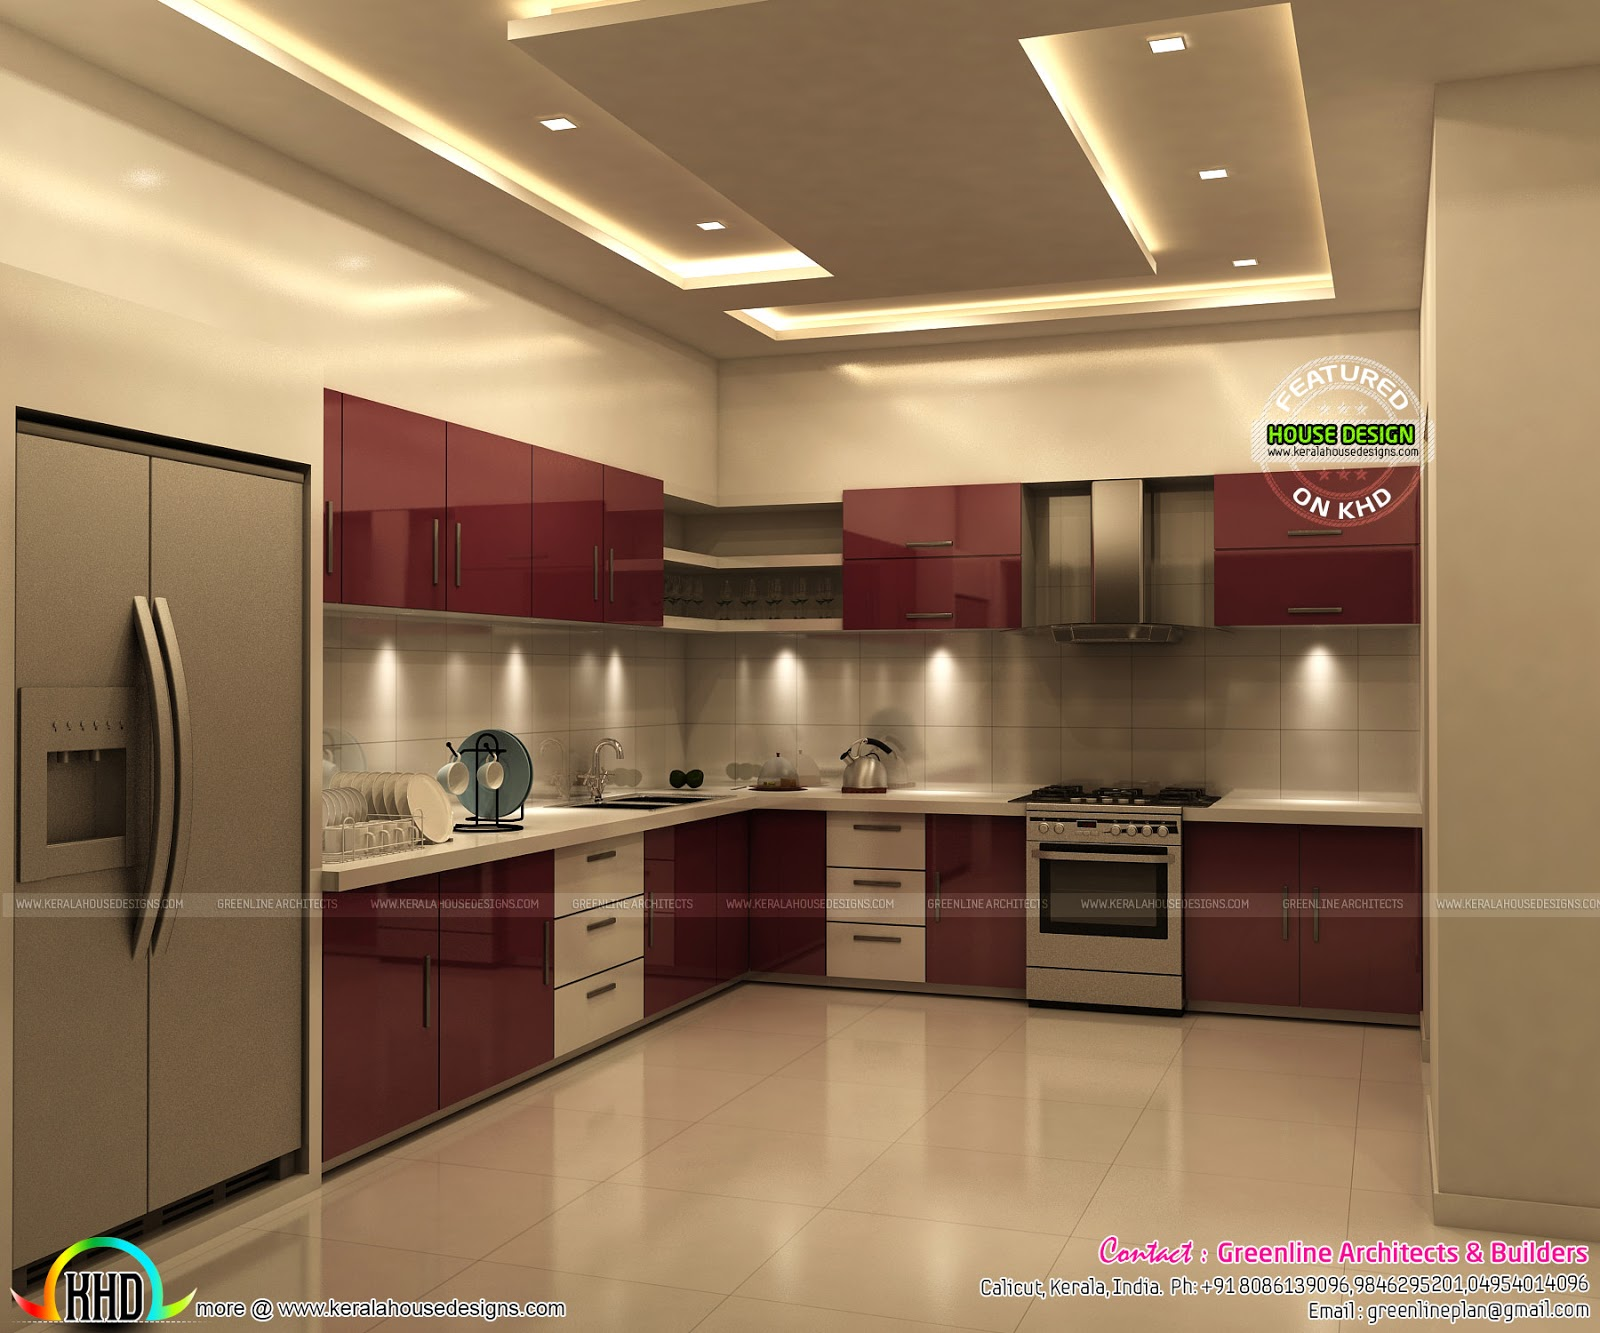 Superb kitchen and bedroom interiors kerala home design for House kitchen design